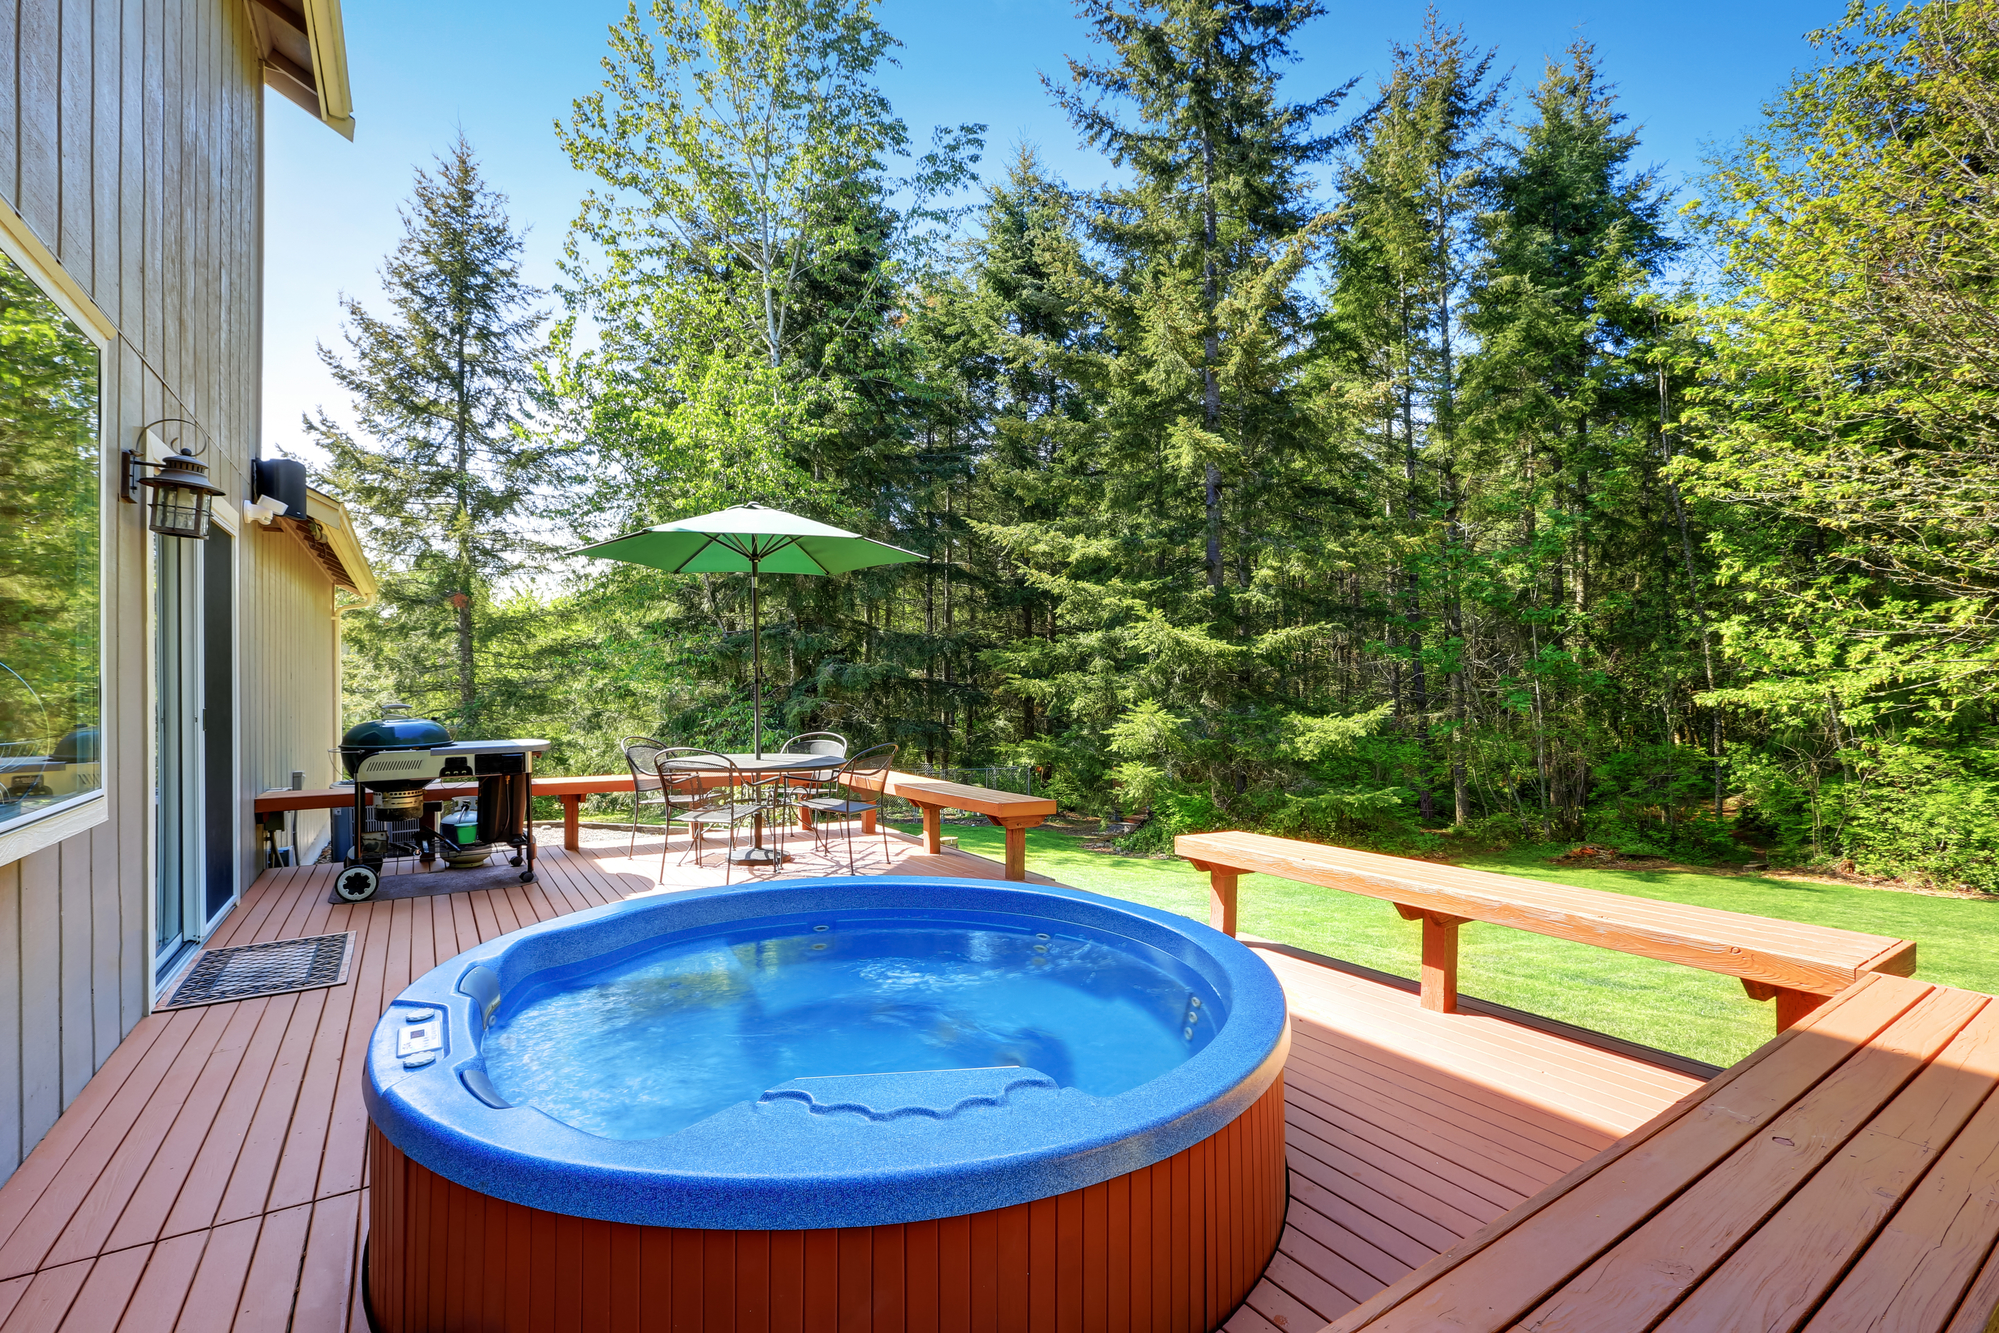 Reasons To Leave Pool Electrical Wiring The Professionals Sked House Job Description